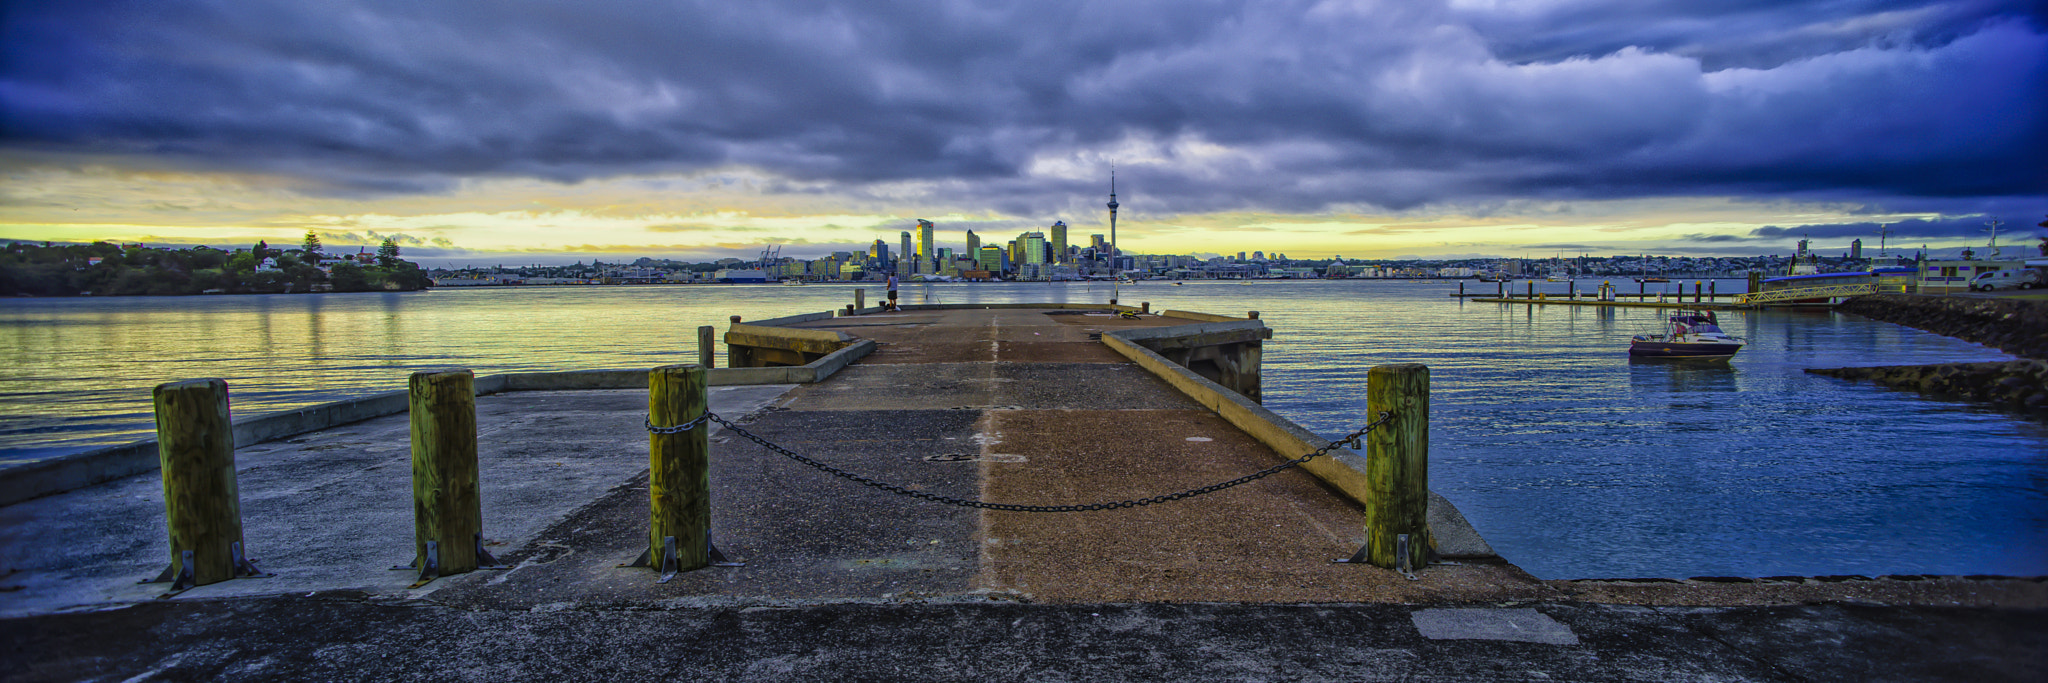 Photograph Bayswater Wharf by David Newport on 500px